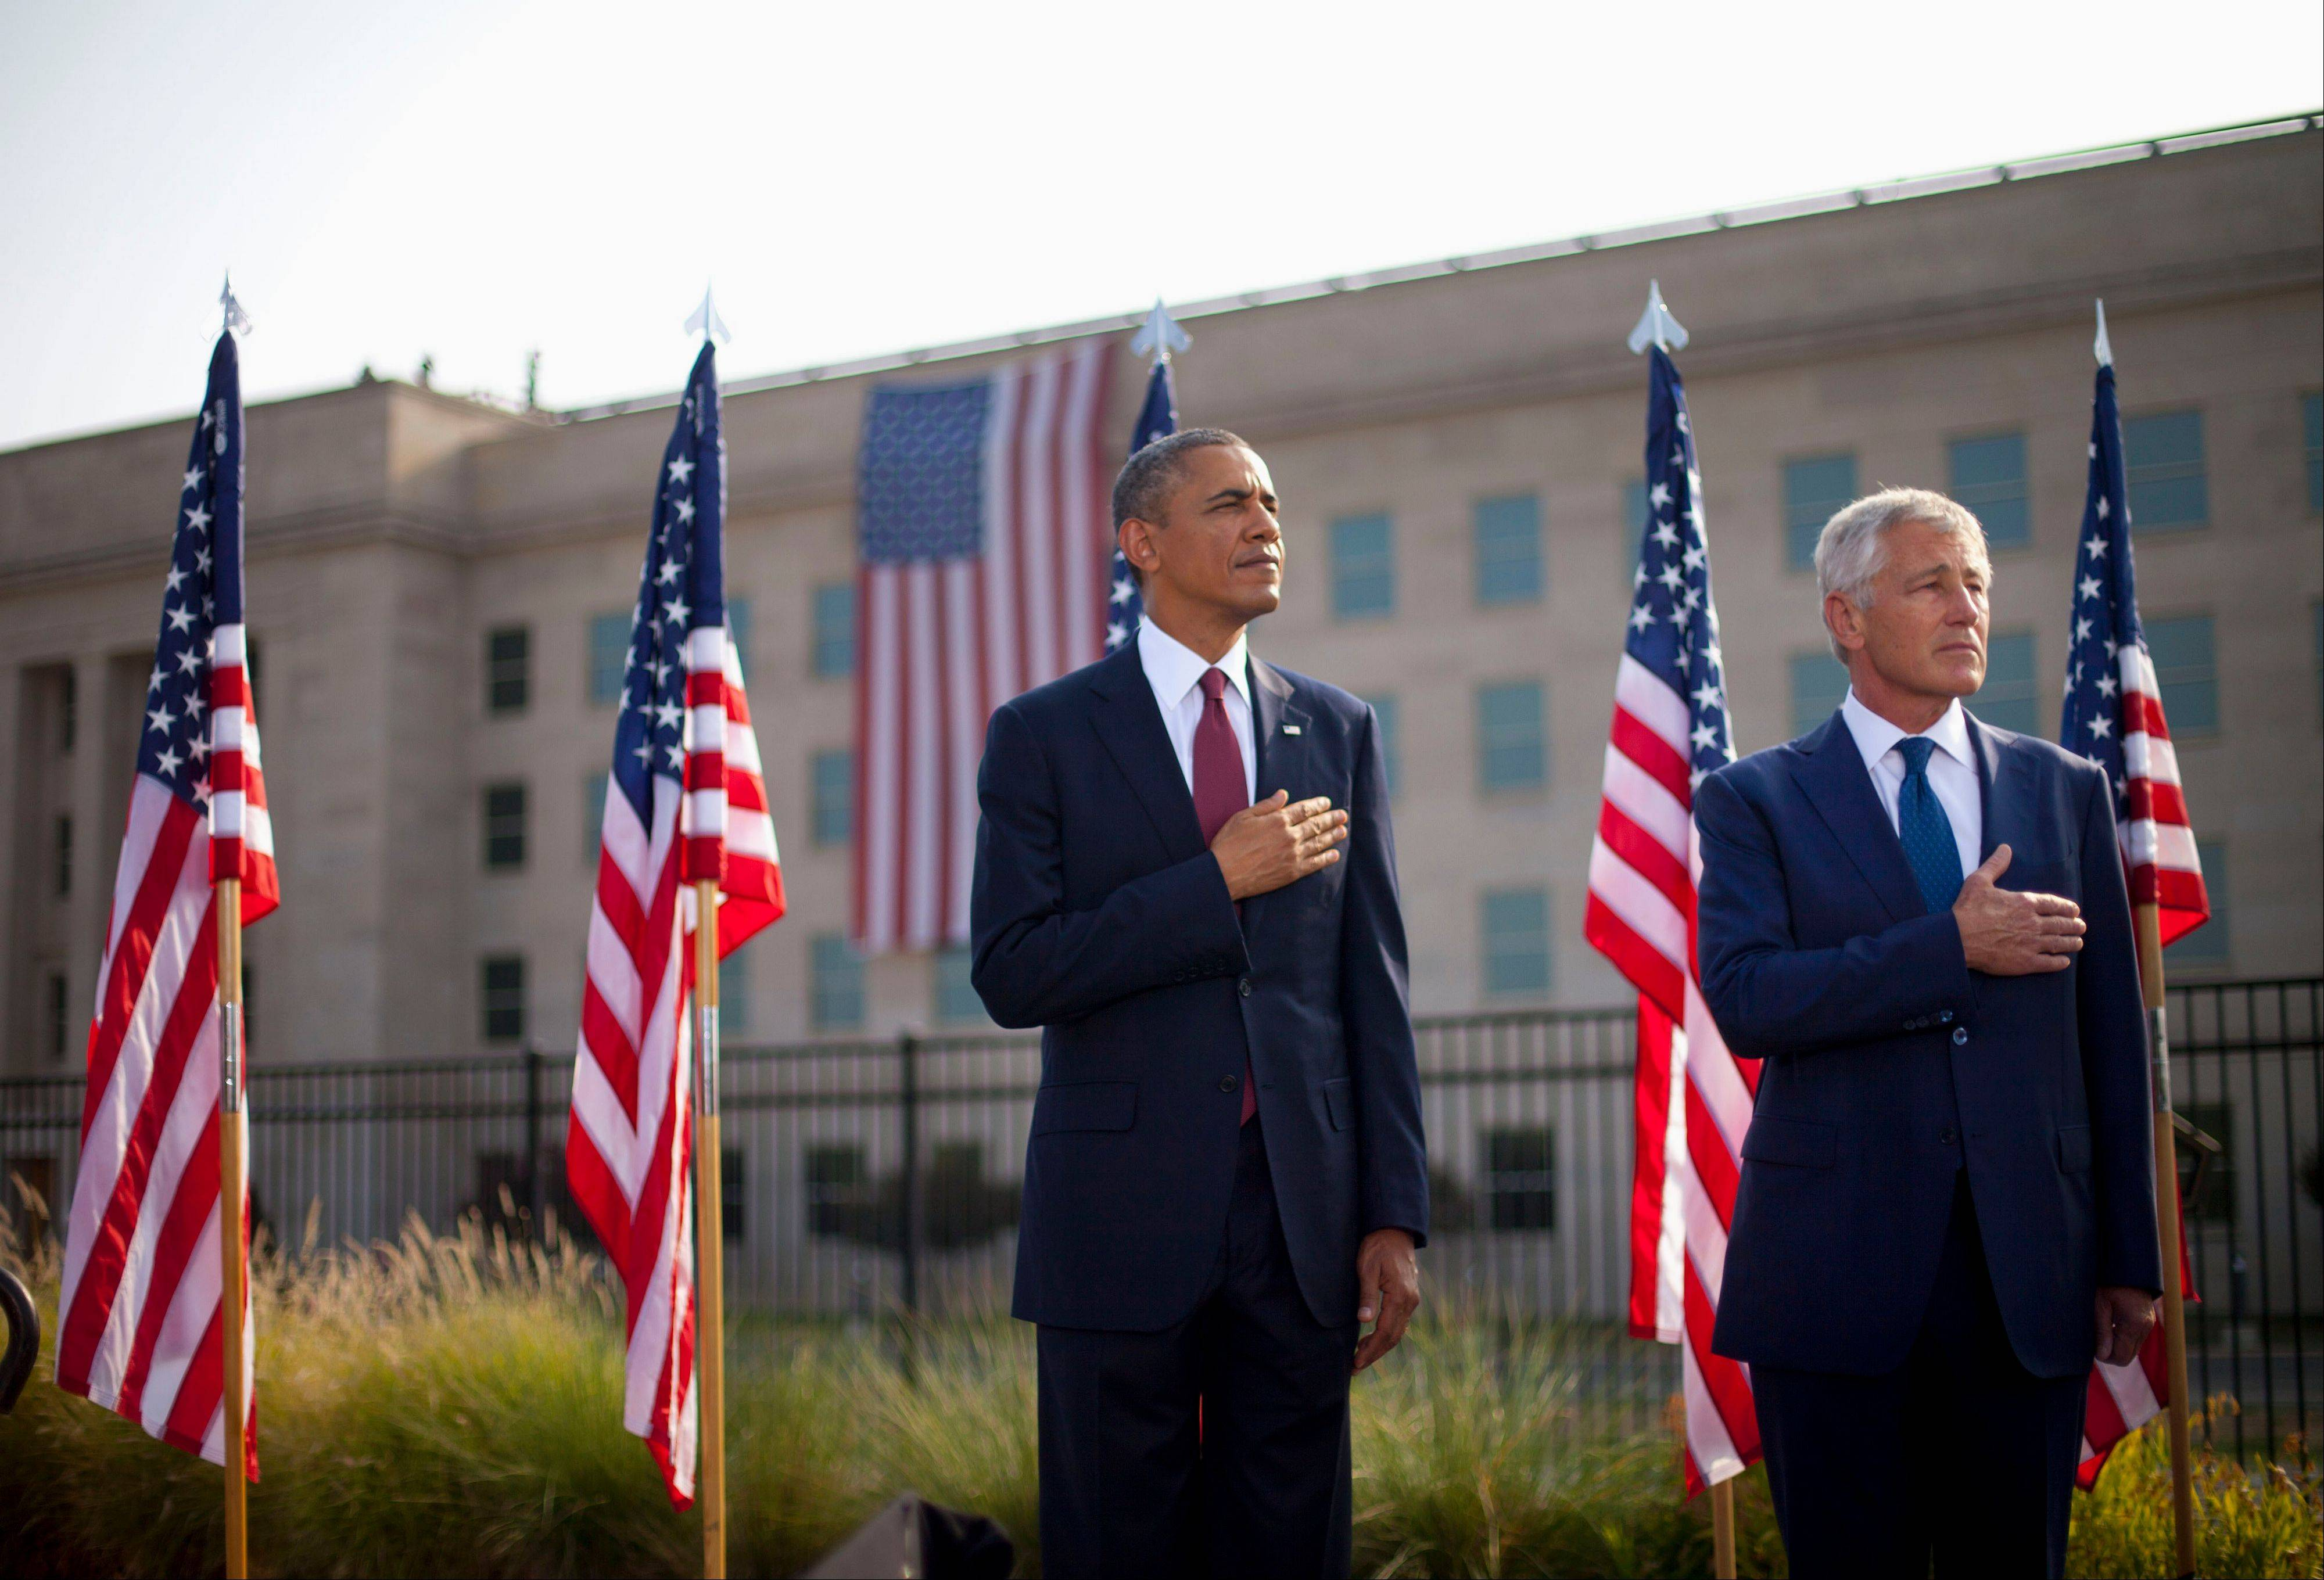 President Barack Obama and Defense Secretary Chuck Hagel hold their hands over their hearts during the playing of the national anthem, Wednesday, Sept. 11, 2013, at the Pentagon during a ceremony to mark the 12th anniversary of the 9/11 attacks.